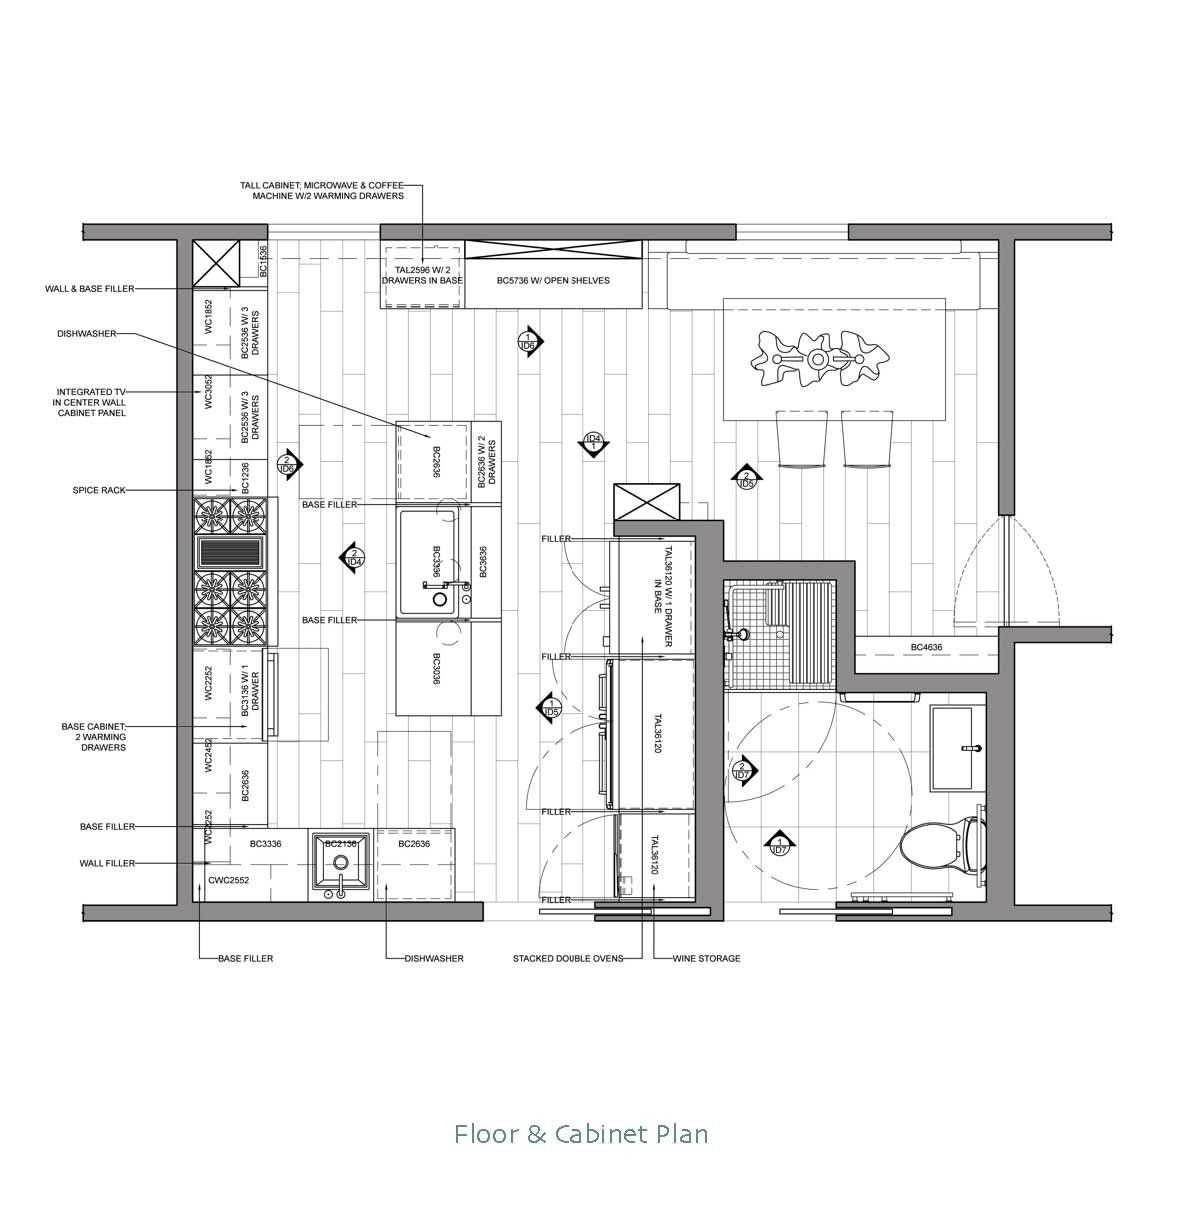 Kitchen Cabinets Design Drawings: Chef's Kitchen